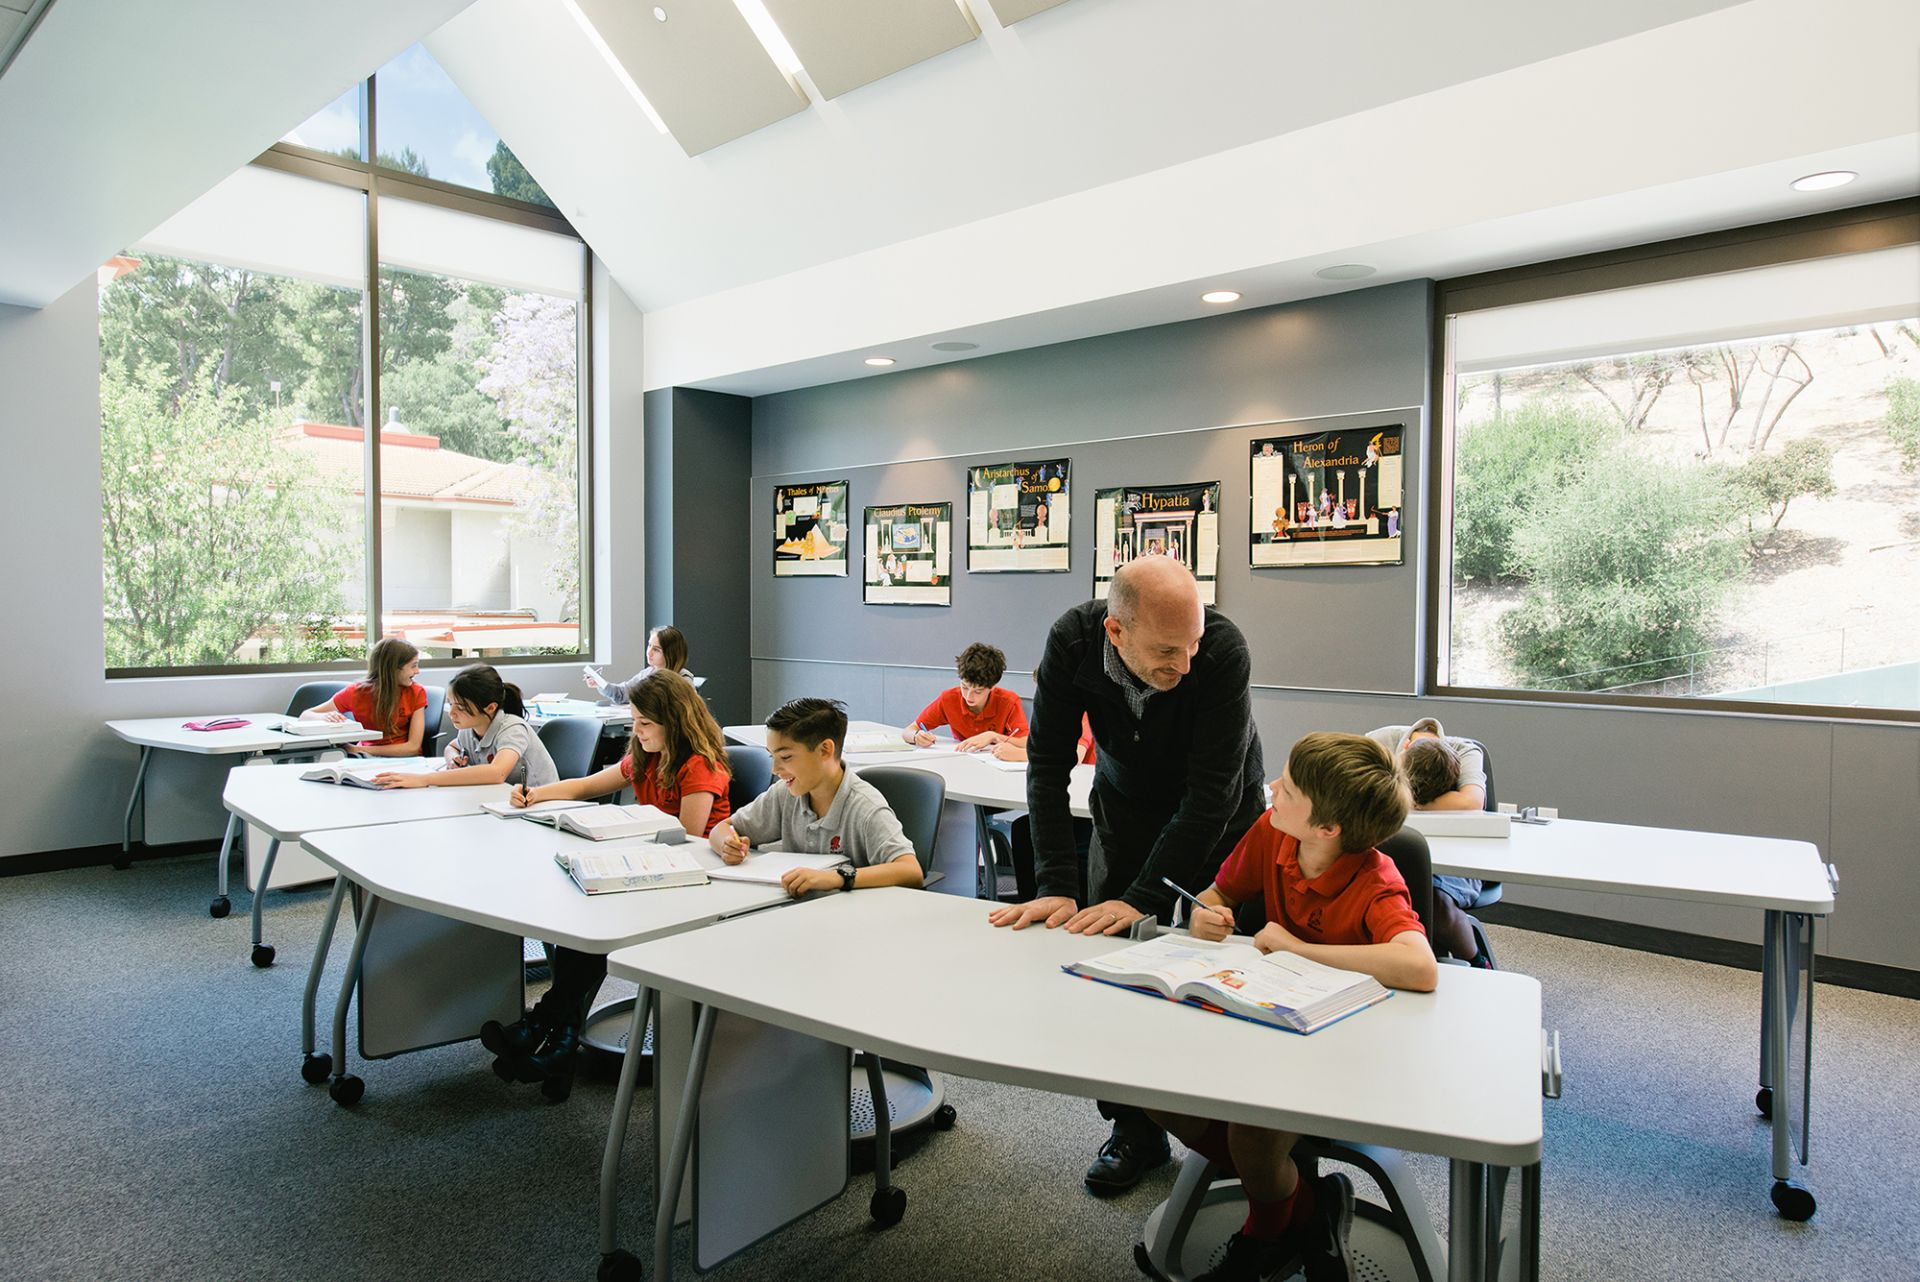 Both Middle and Upper School math classes are held in The Math and Science Building.